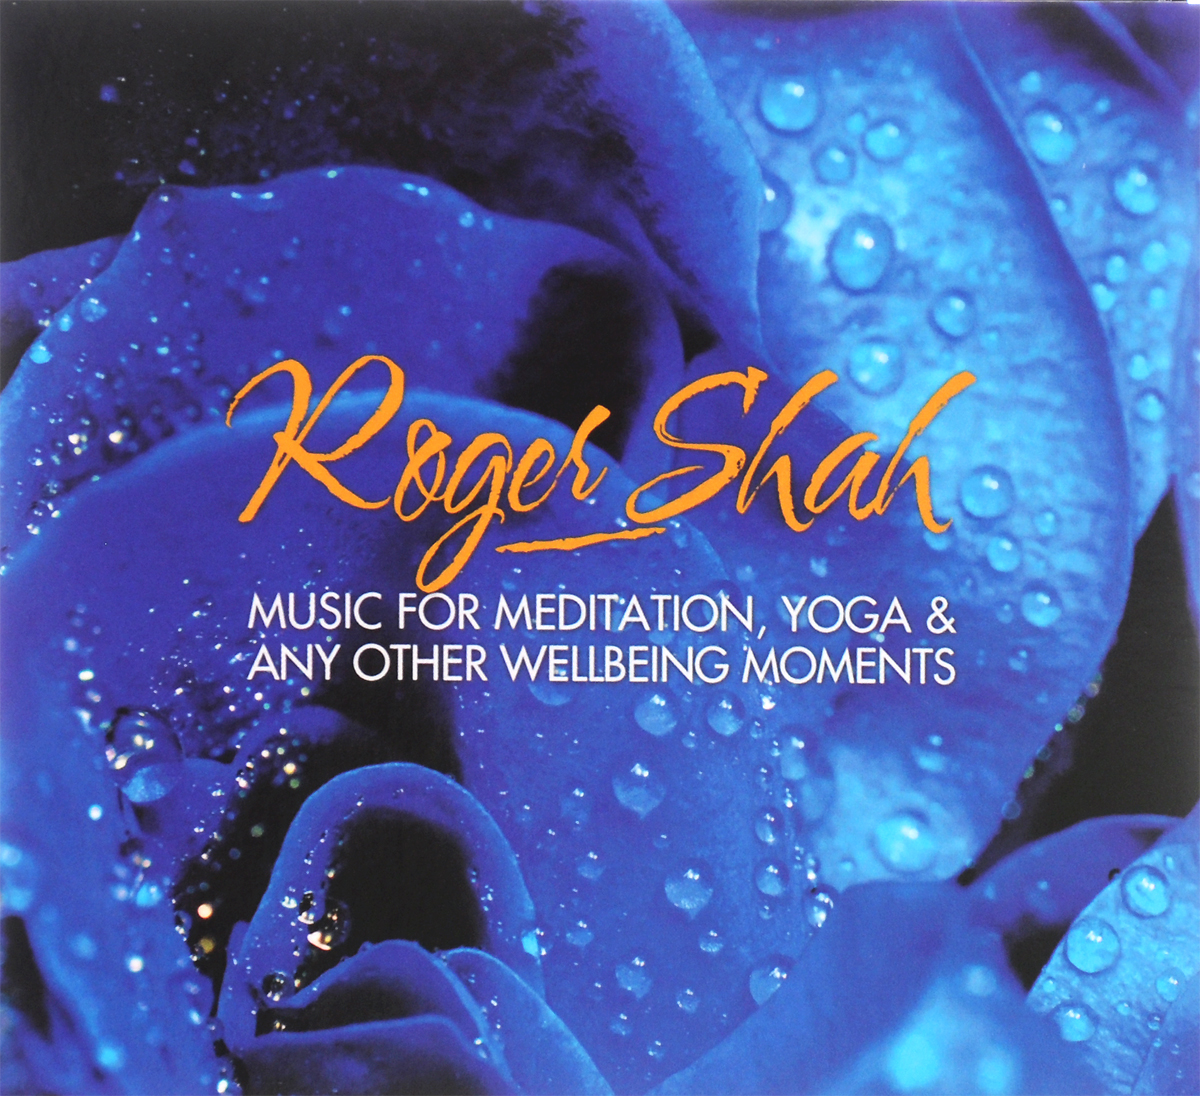 Roger Shah. Music For Meditation, Yoga & Any Other Wellbeing Moments